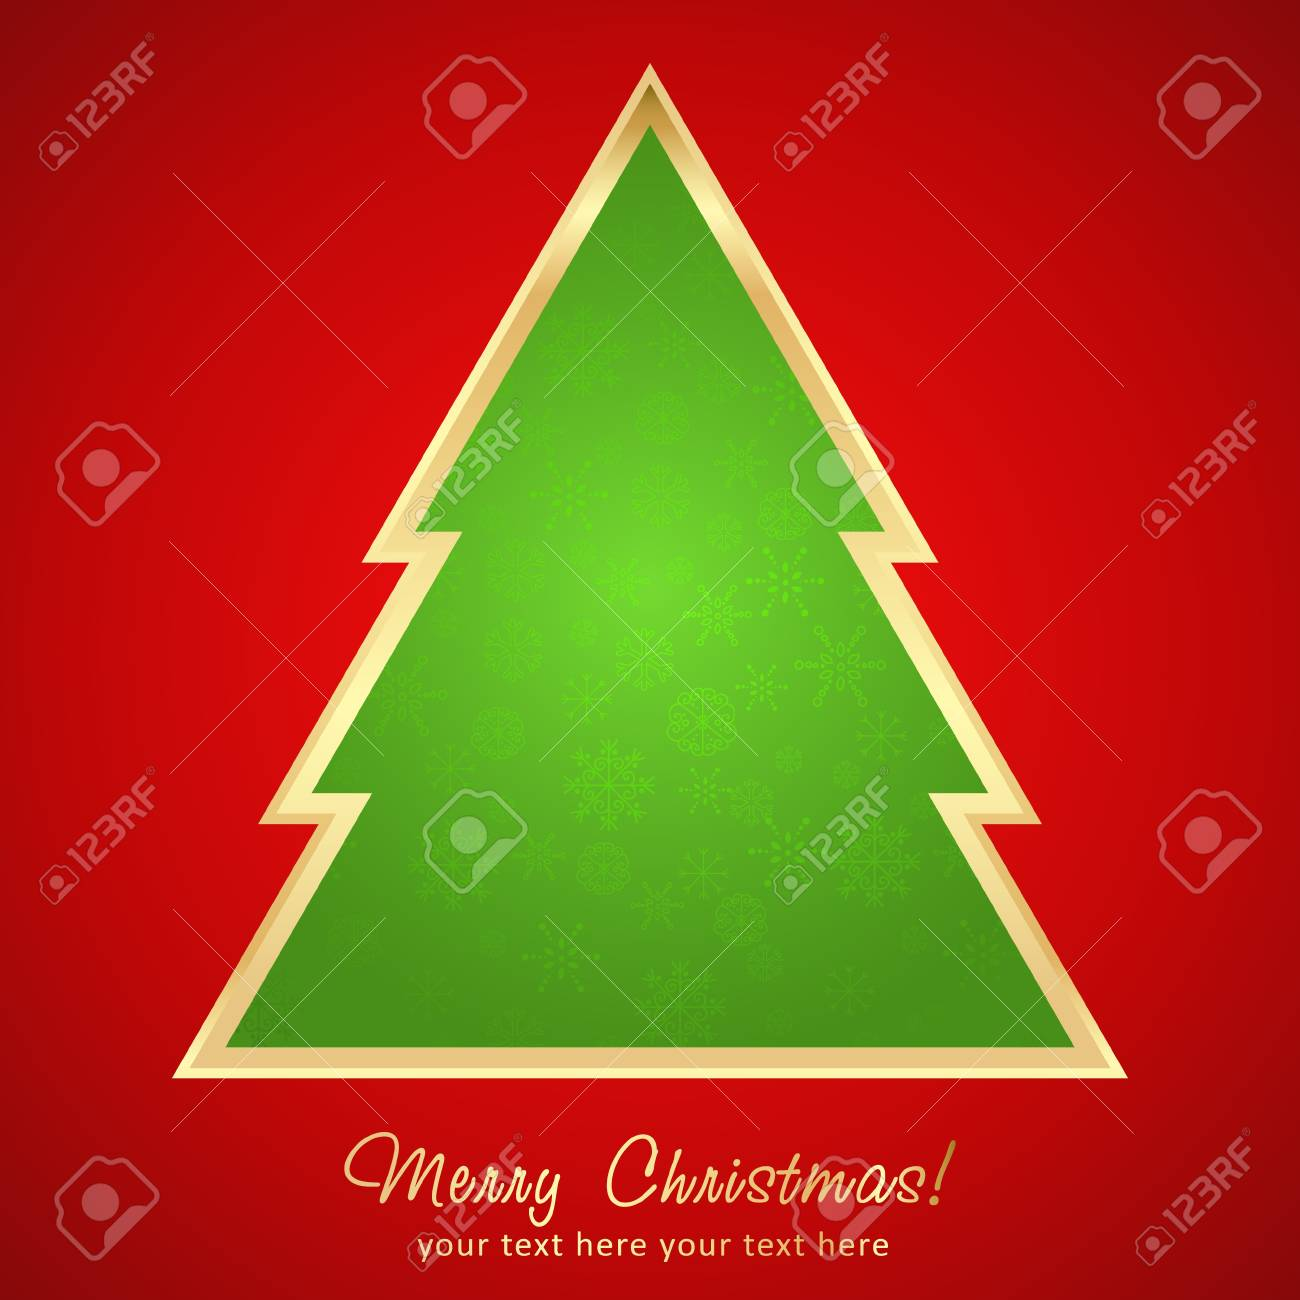 Beautiful Christmas greeting card with cartoon xmas tree Stock Vector - 16771996